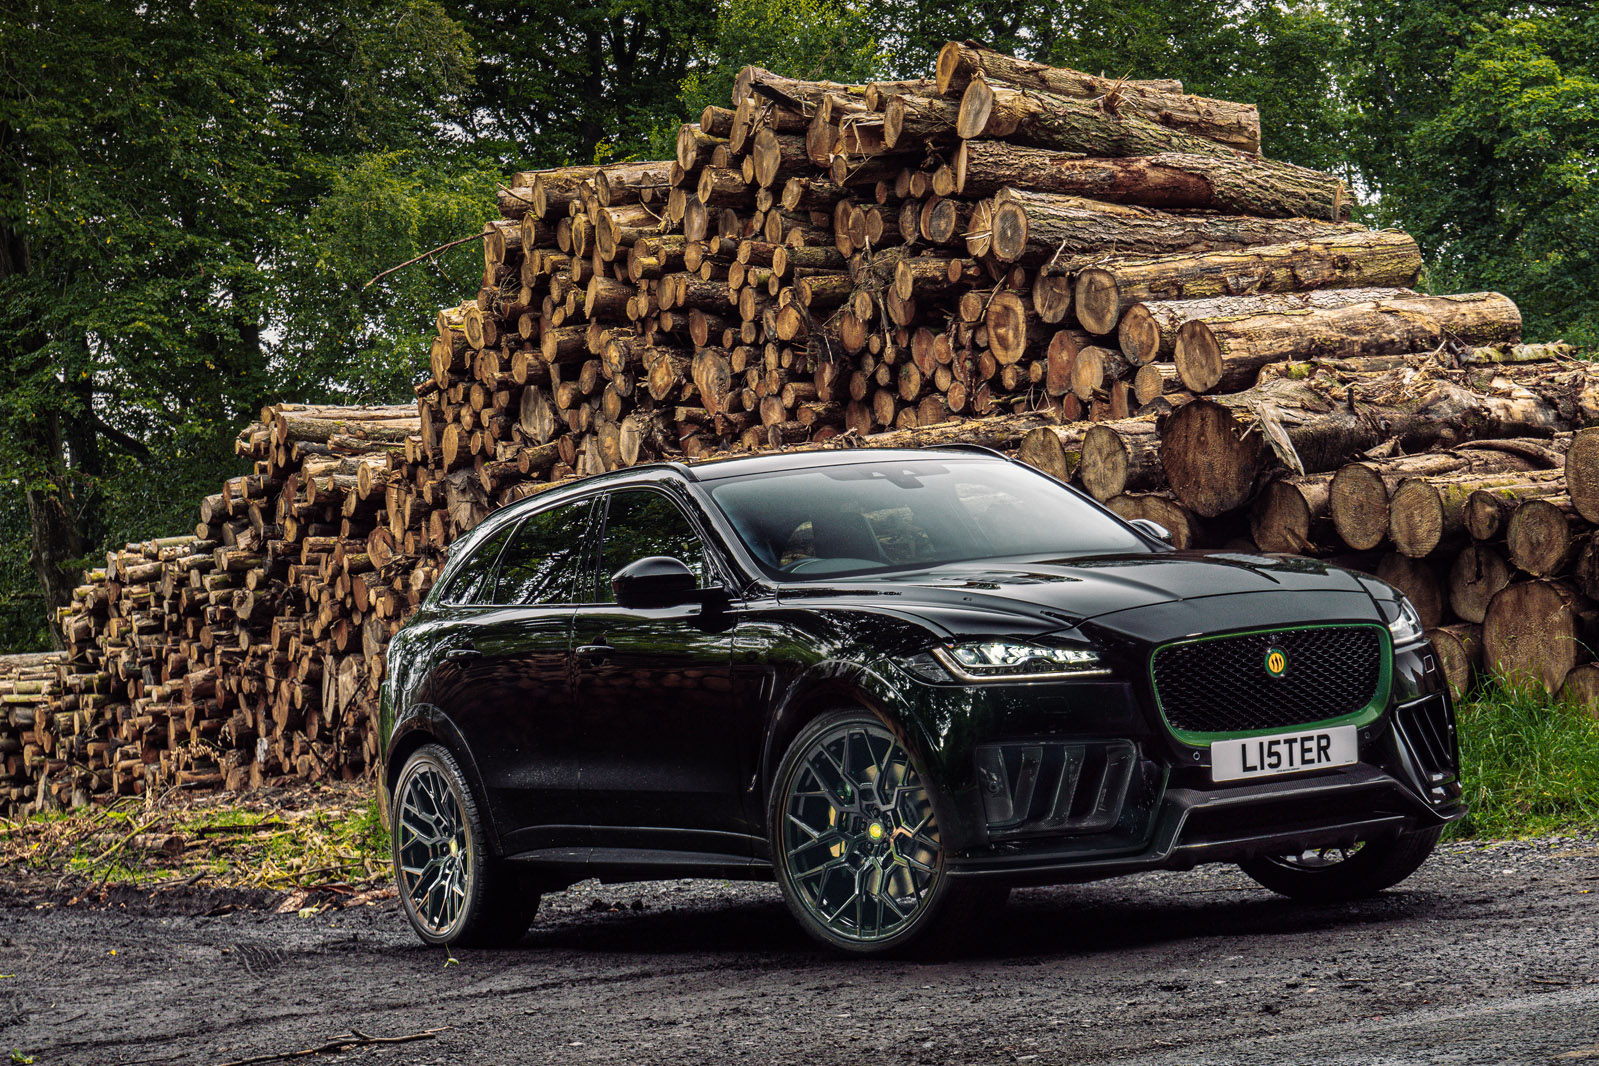 lister stealth front - Lister reveals 666bhp Stealth as Britain's fastest SUV - Lister reveals 666bhp Stealth as Britain's fastest SUV